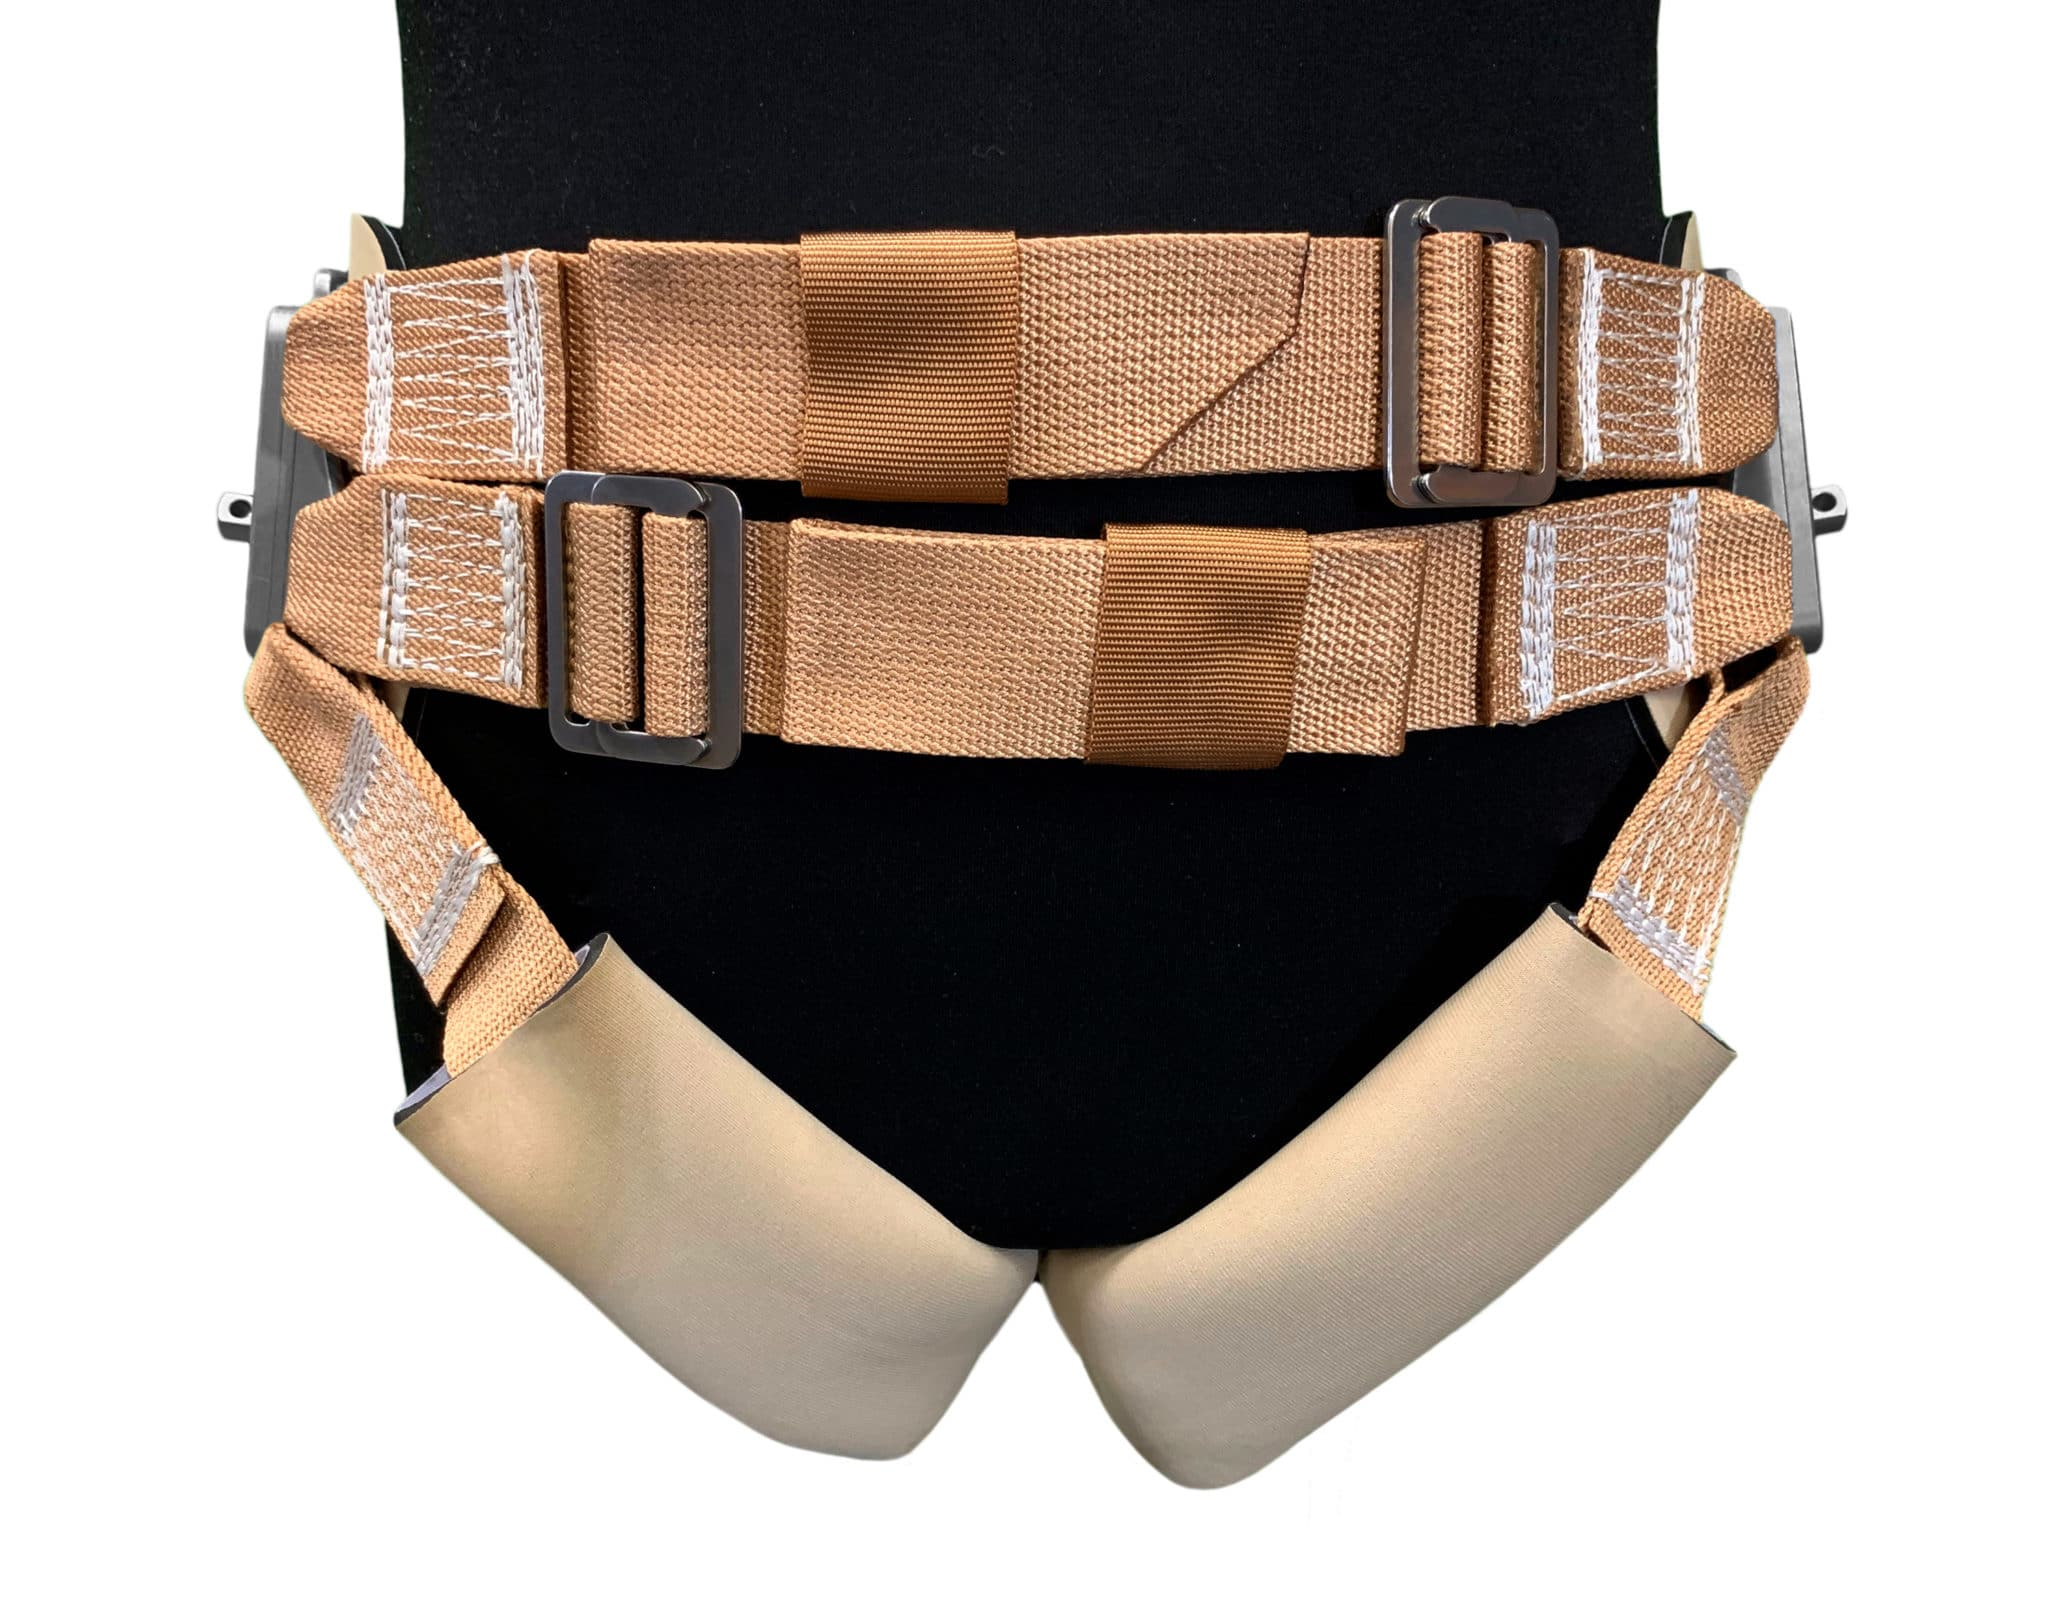 Swivel flying harness for aerial acrobatic, stunts, stage performances